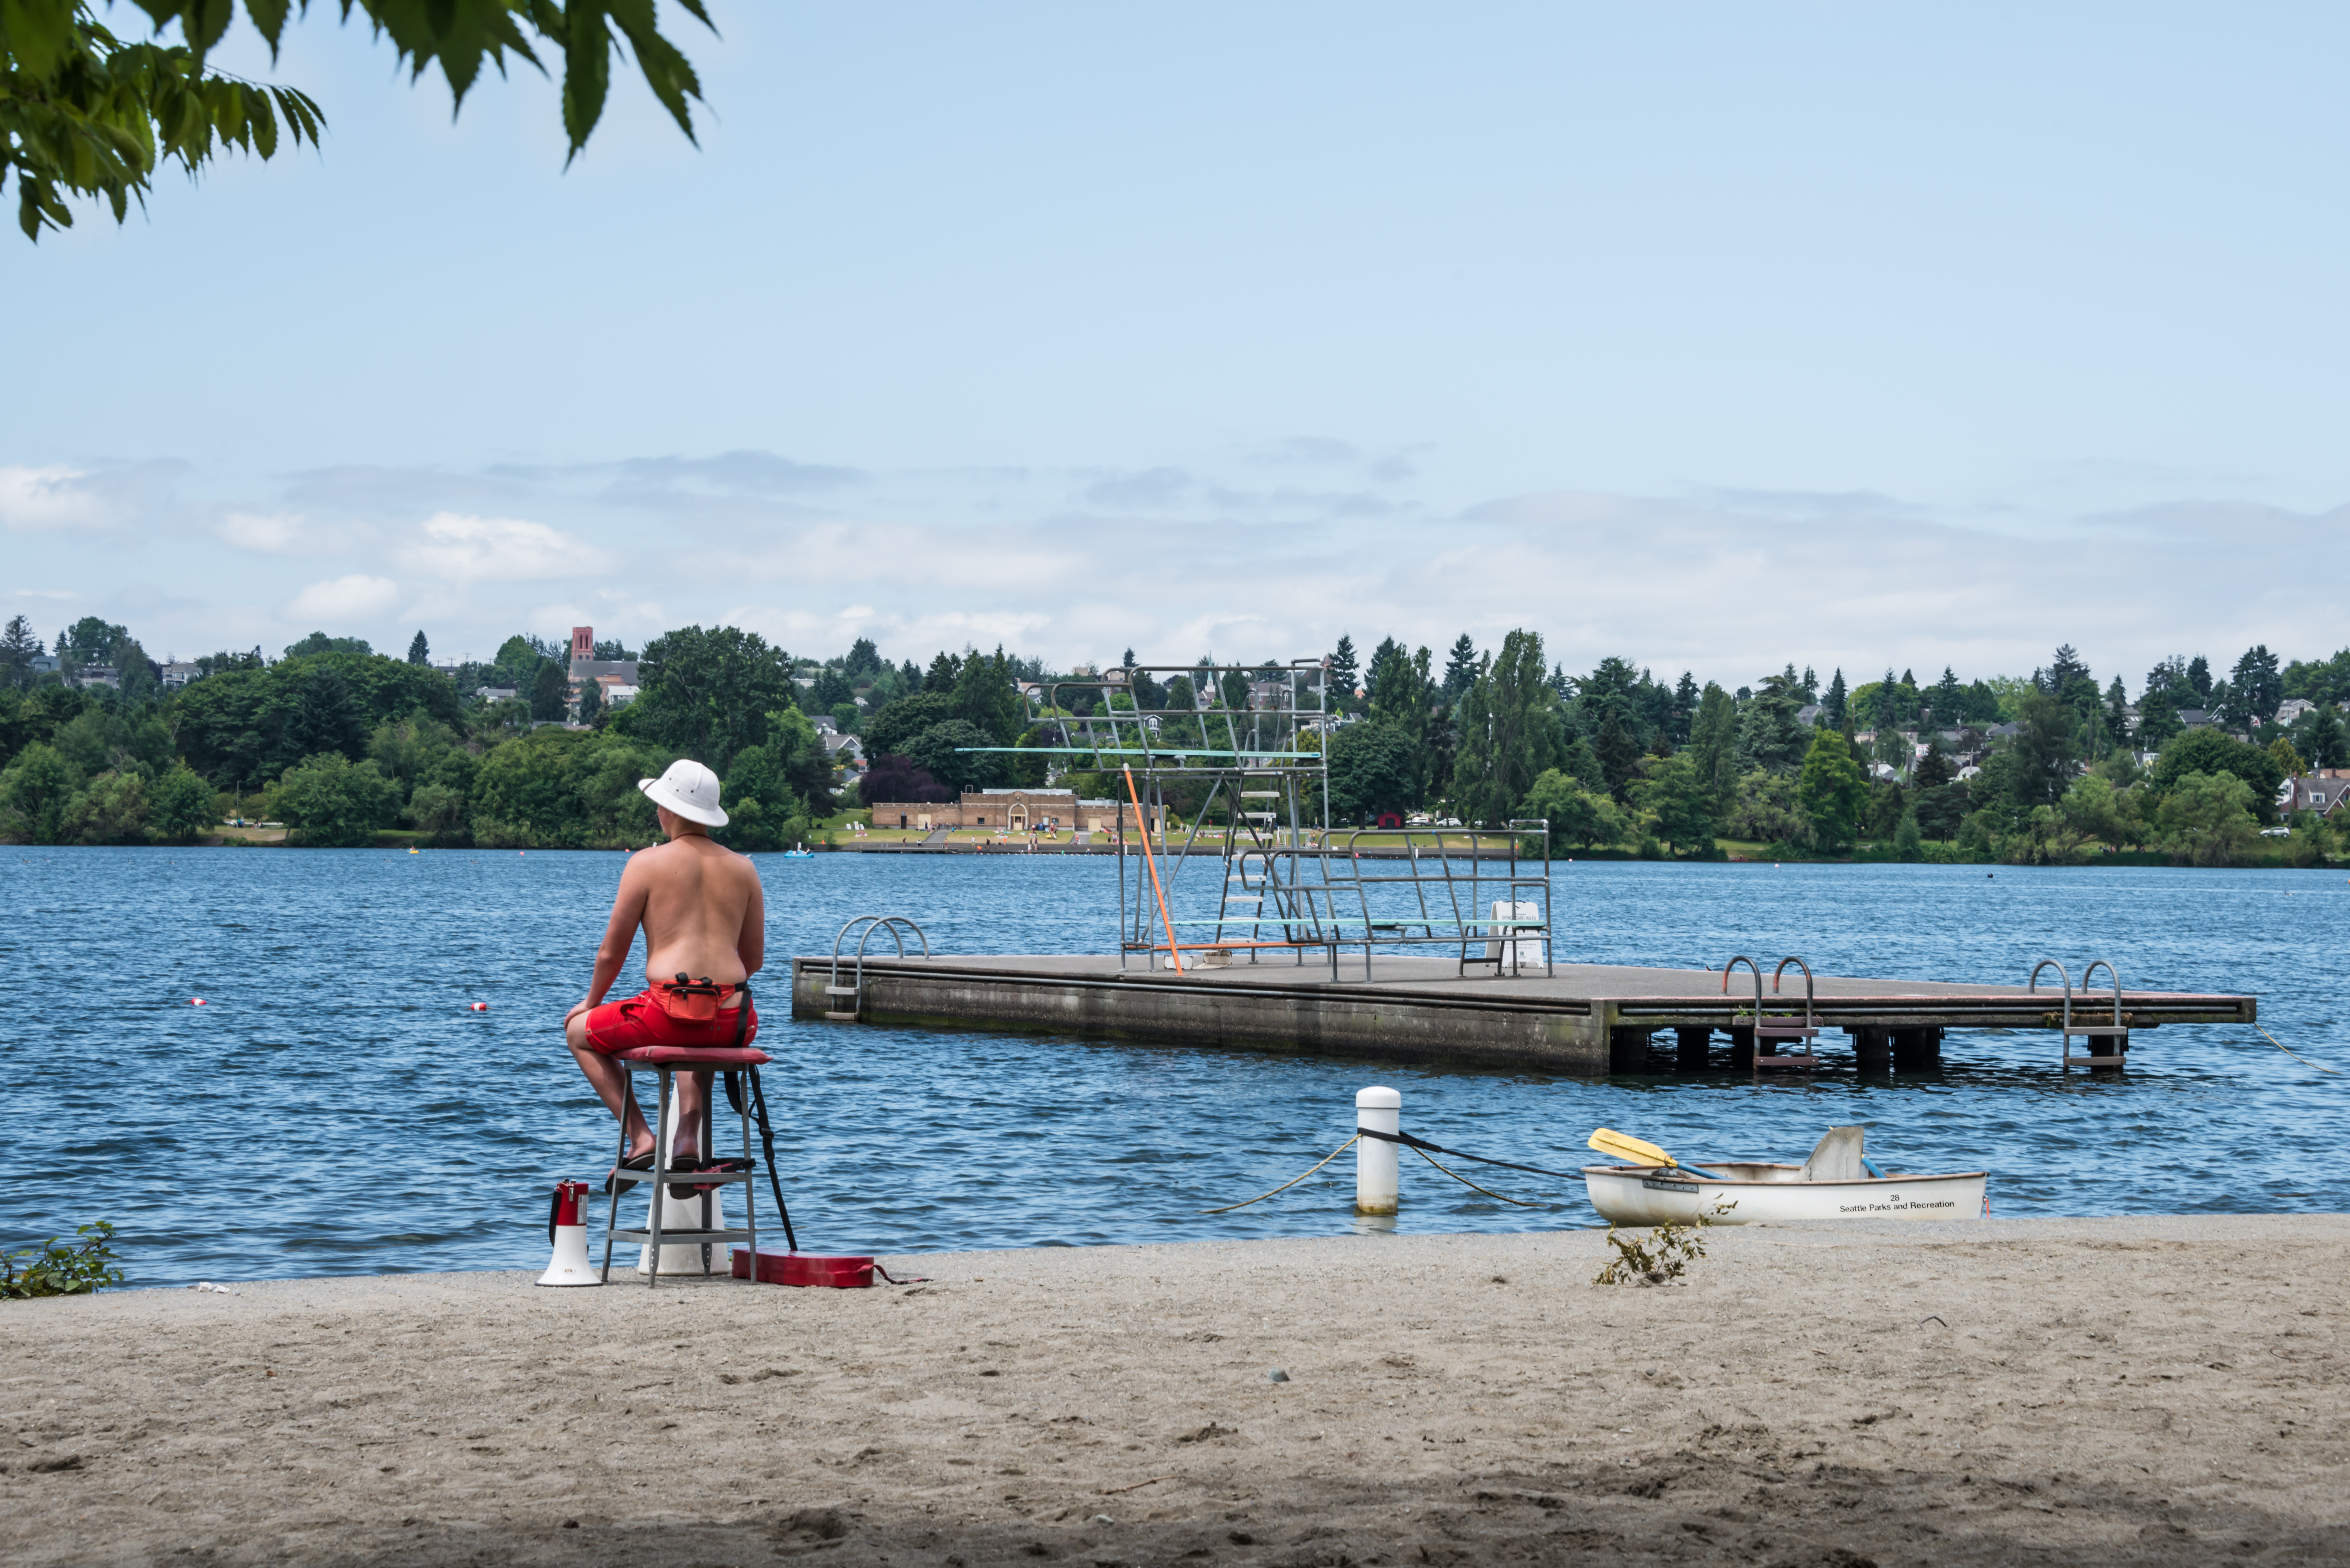 In the foreground is a sandy beach. A lifeguard is sitting on a tall chair on the beach. In the distance is a wooden pier in a body of water.